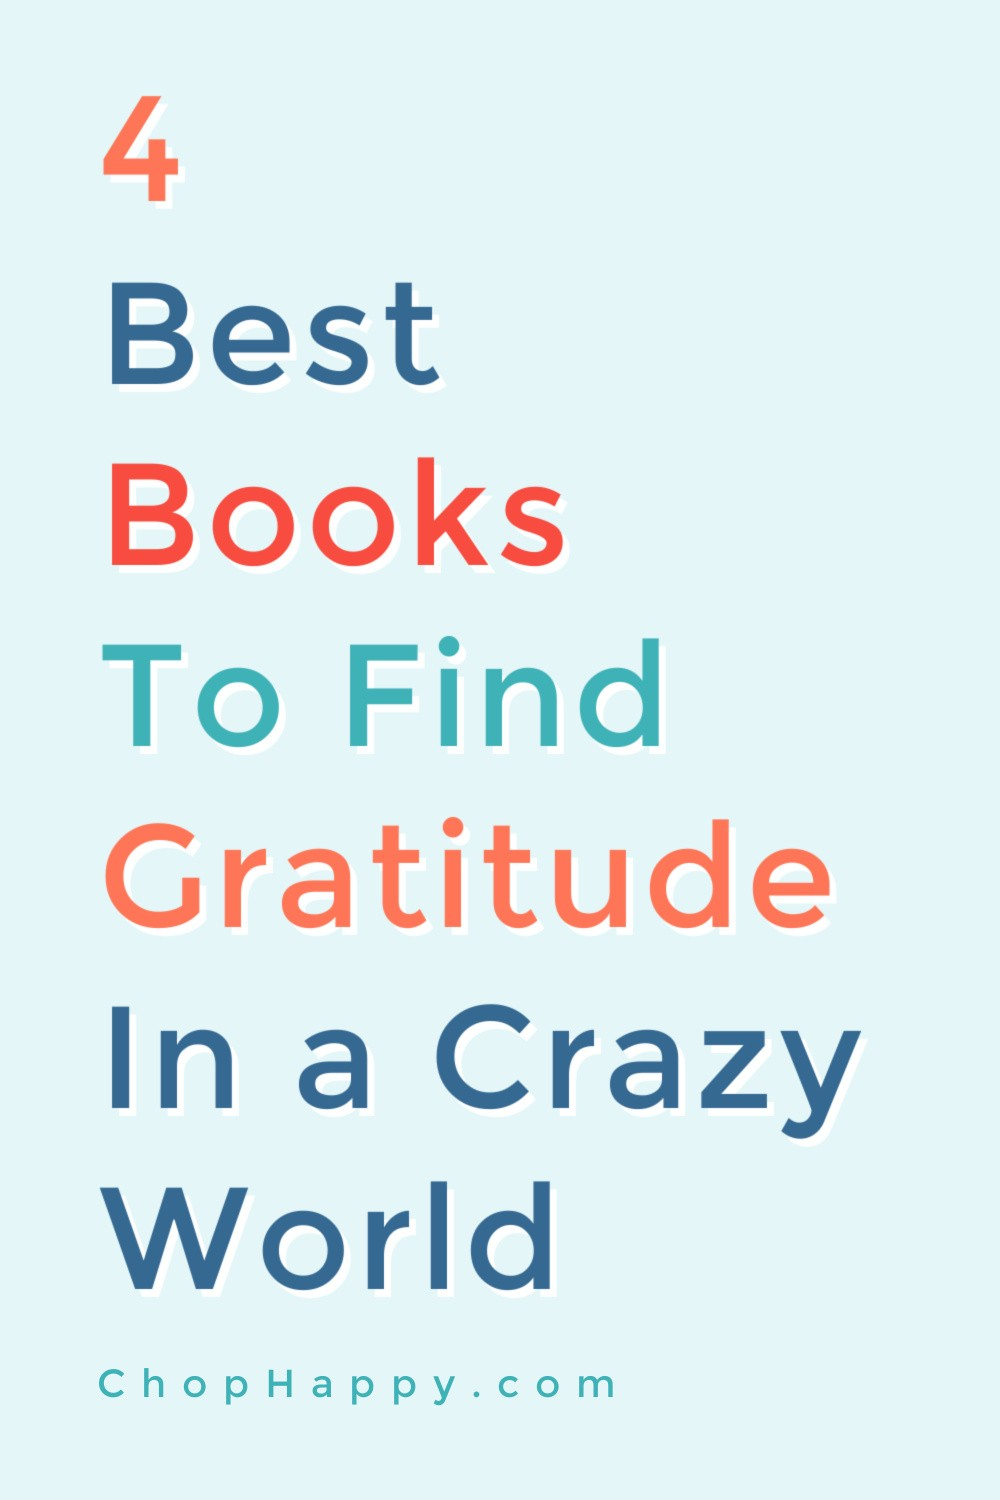 4 Best Books To Find Gratitude in A Crazy World. All these books changed my life and brought me to a more grateful life! I learn the most in tough times and also go to these books for inspiration to stay grateful in them. ! Dream big and never give up! www.ChopHappy.com #gratitude #inspiringbooks